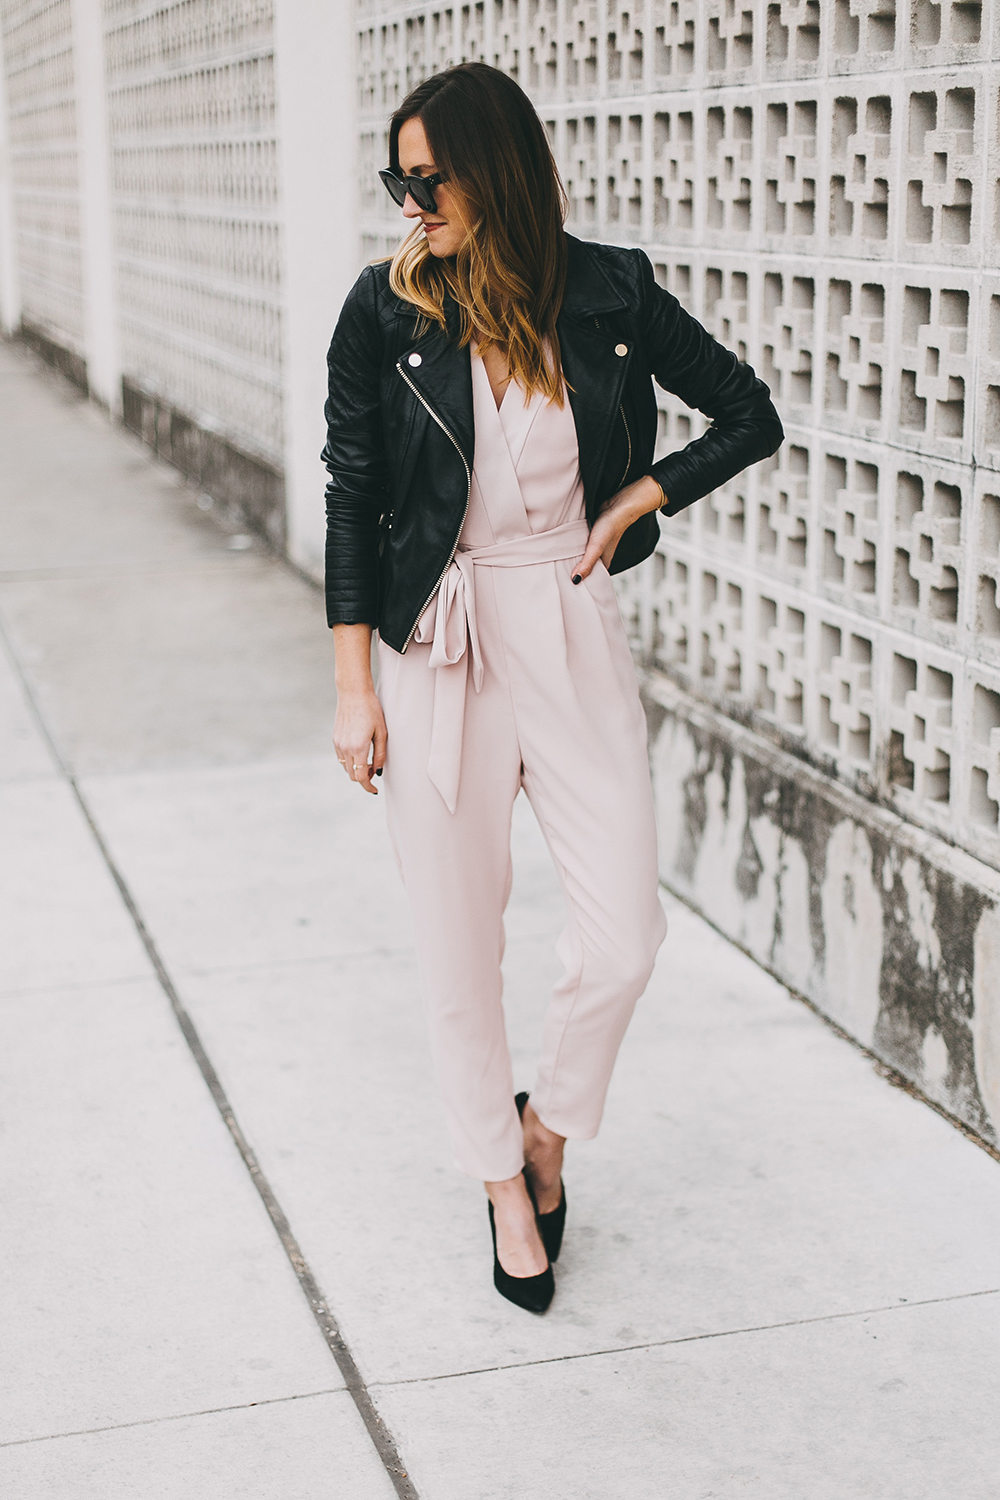 livvyland-river-island-blush-pink-jumpsuit-black-leather-jacket-holiday-party-nye-outfit-inspiration-ideas-1